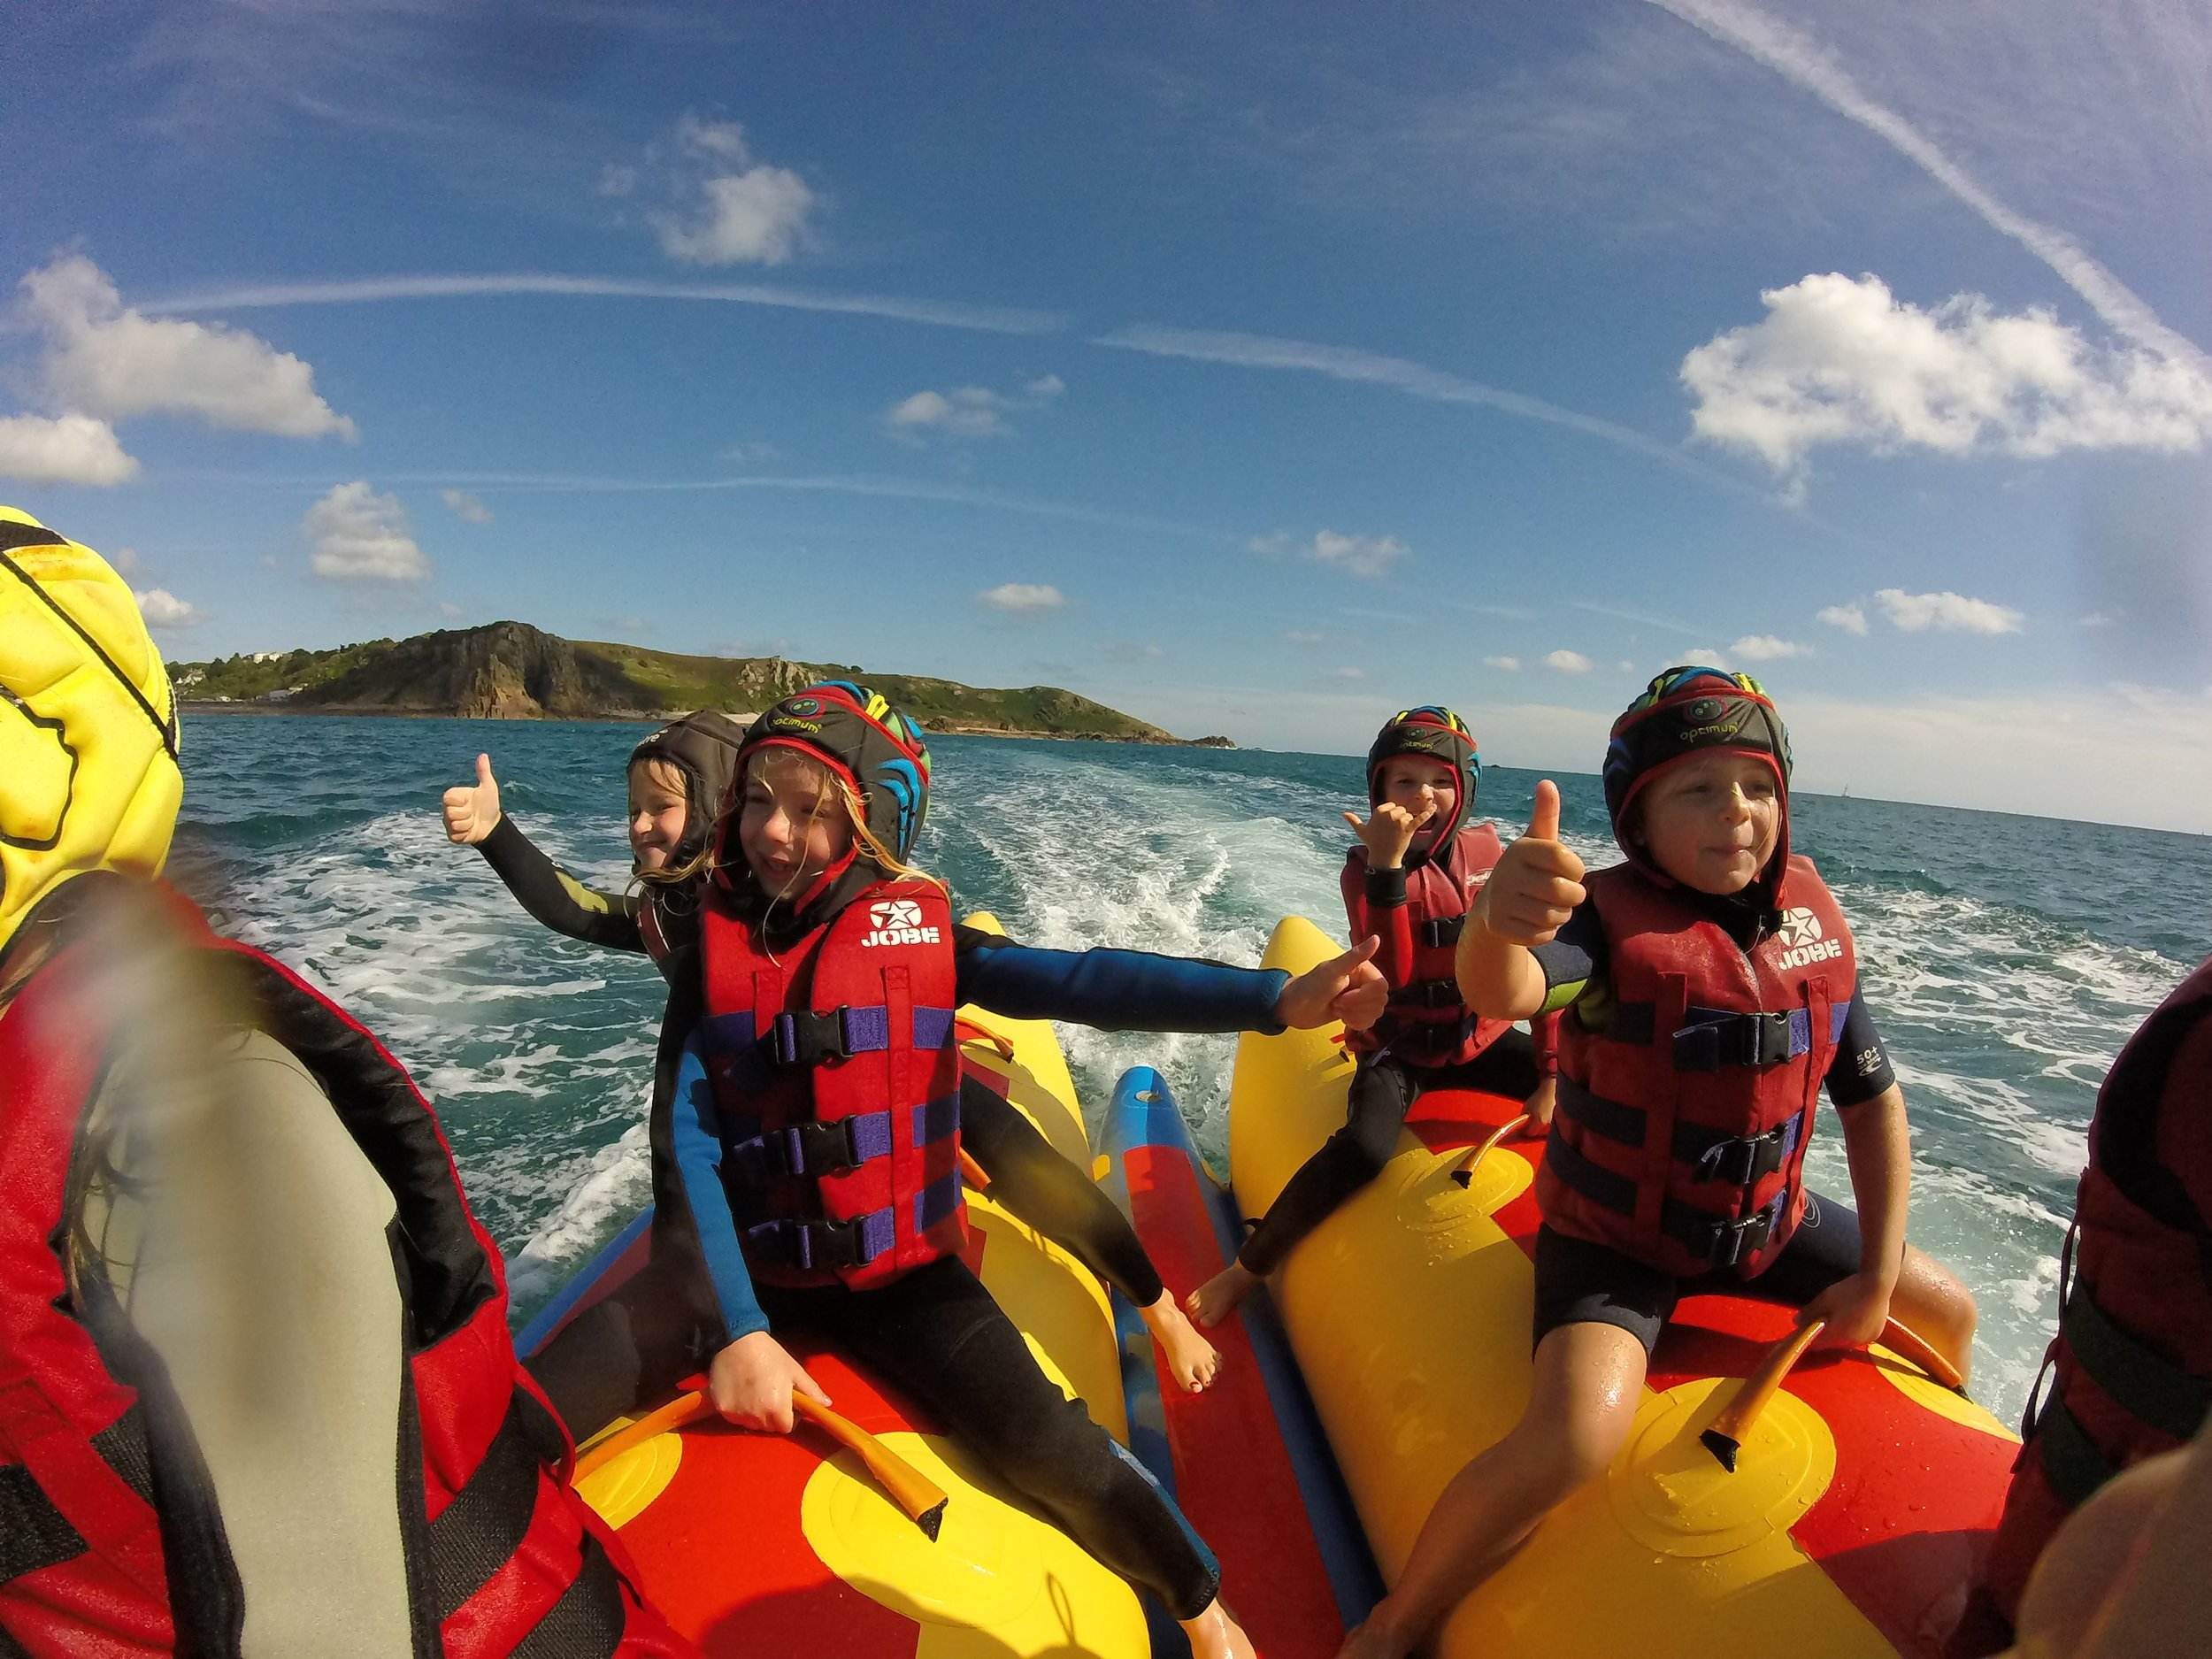 crazy sofa ride gus reviews absolute adventures kids parties if you wish to book simply inquire or have an idea of your own then get in touch by phone email message the form below